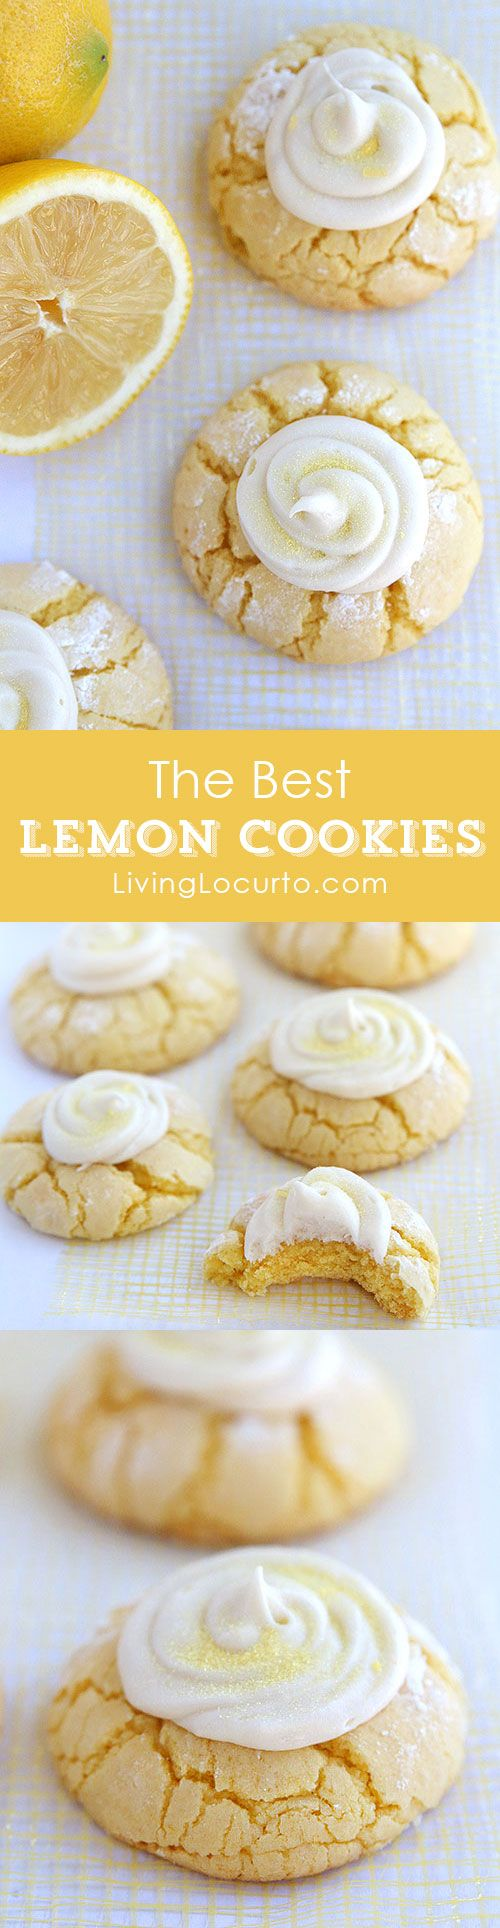 Lemon Crinkle #Cookies Recipe with Lemon Frosting. Sounds like the perfect spring #dessert recipe.